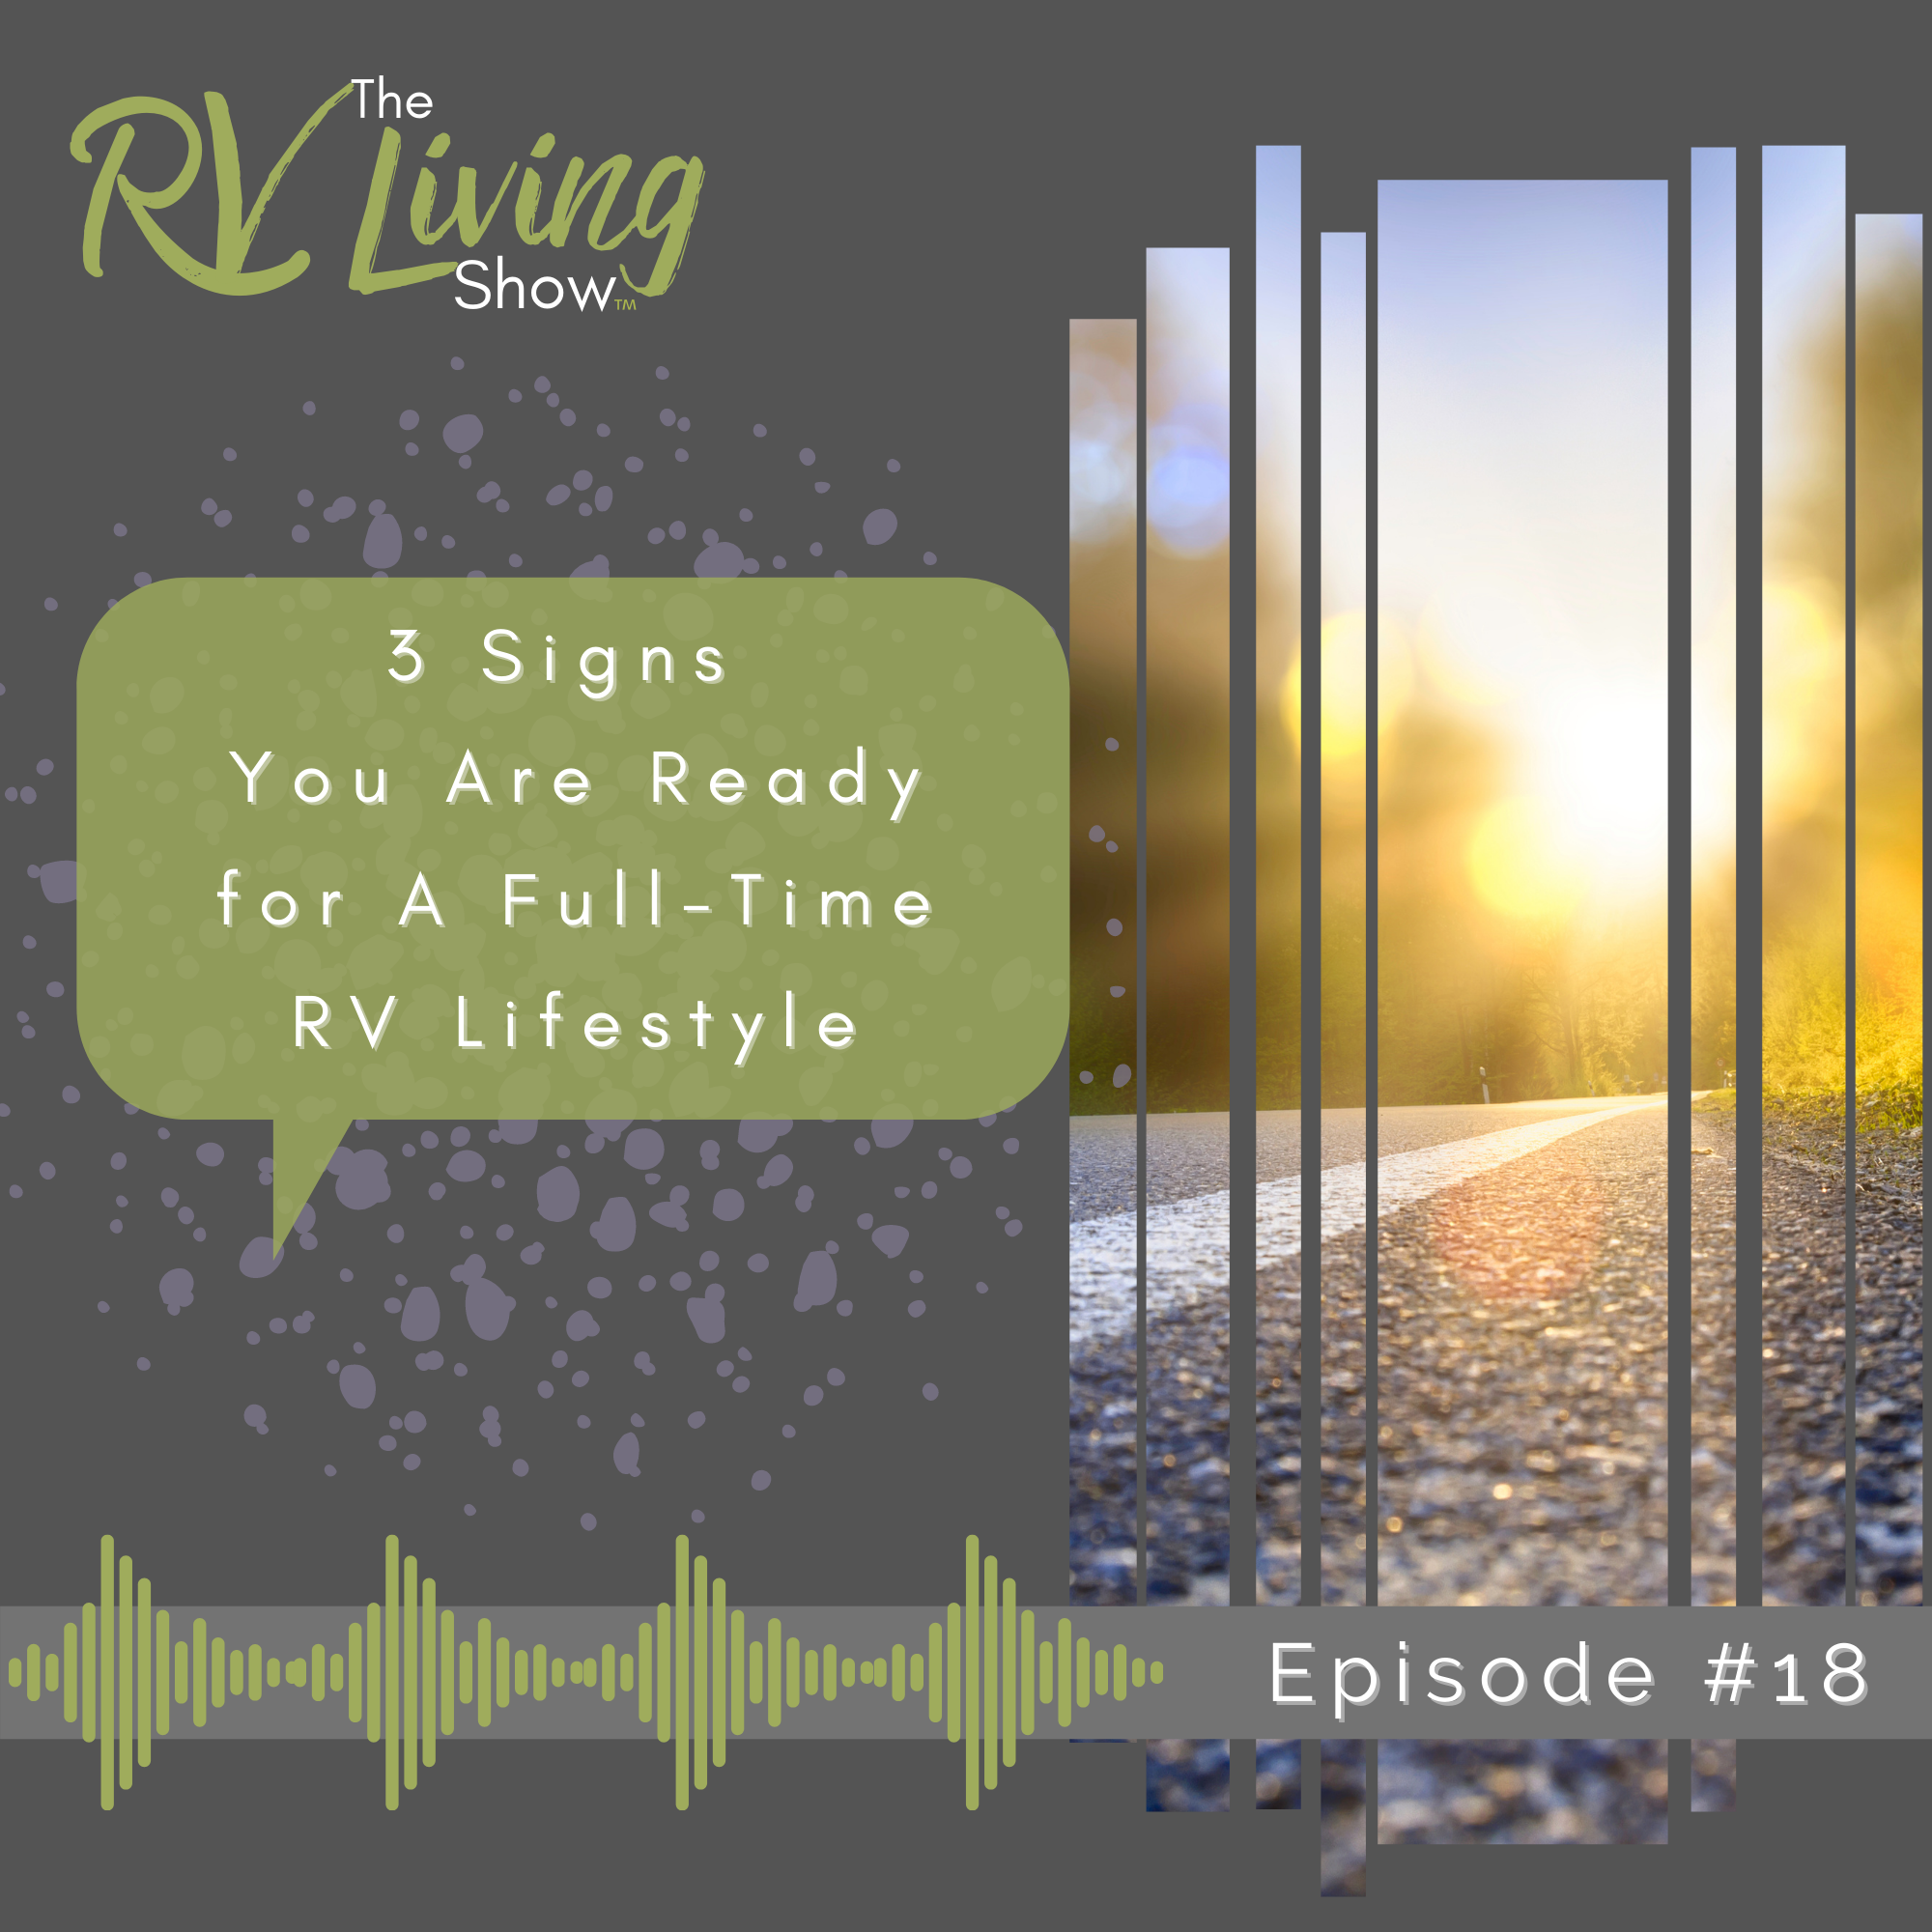 3 Signs You Are Ready For A Full-Time RV Lifestyle - streestwander.com